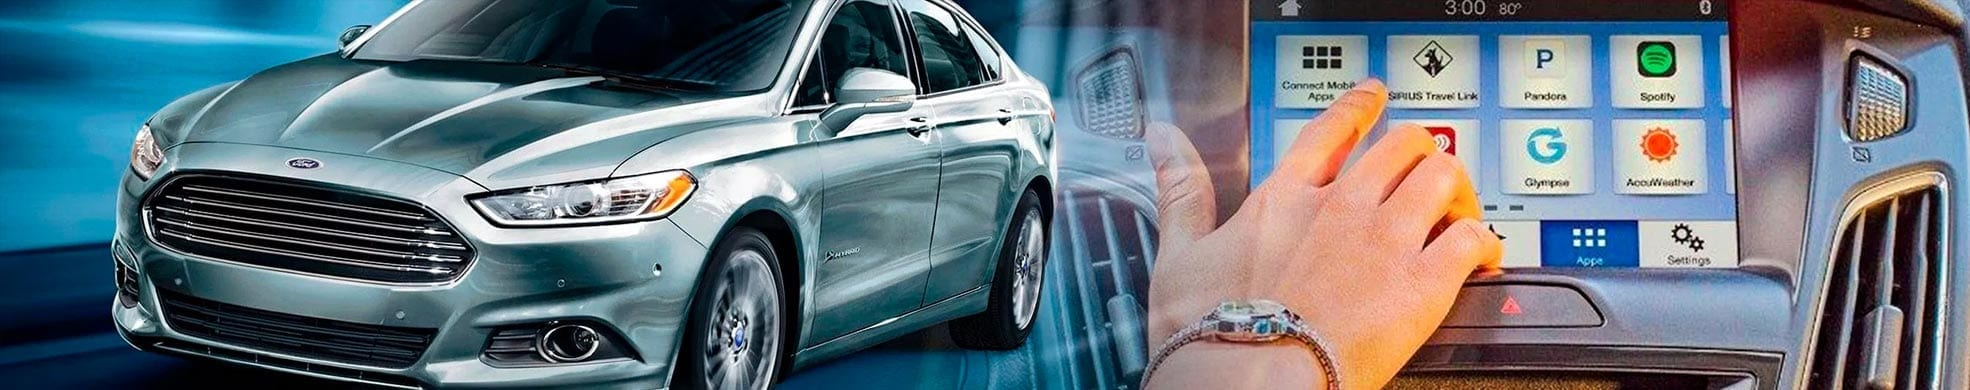 Get Smart with FordPass Connect